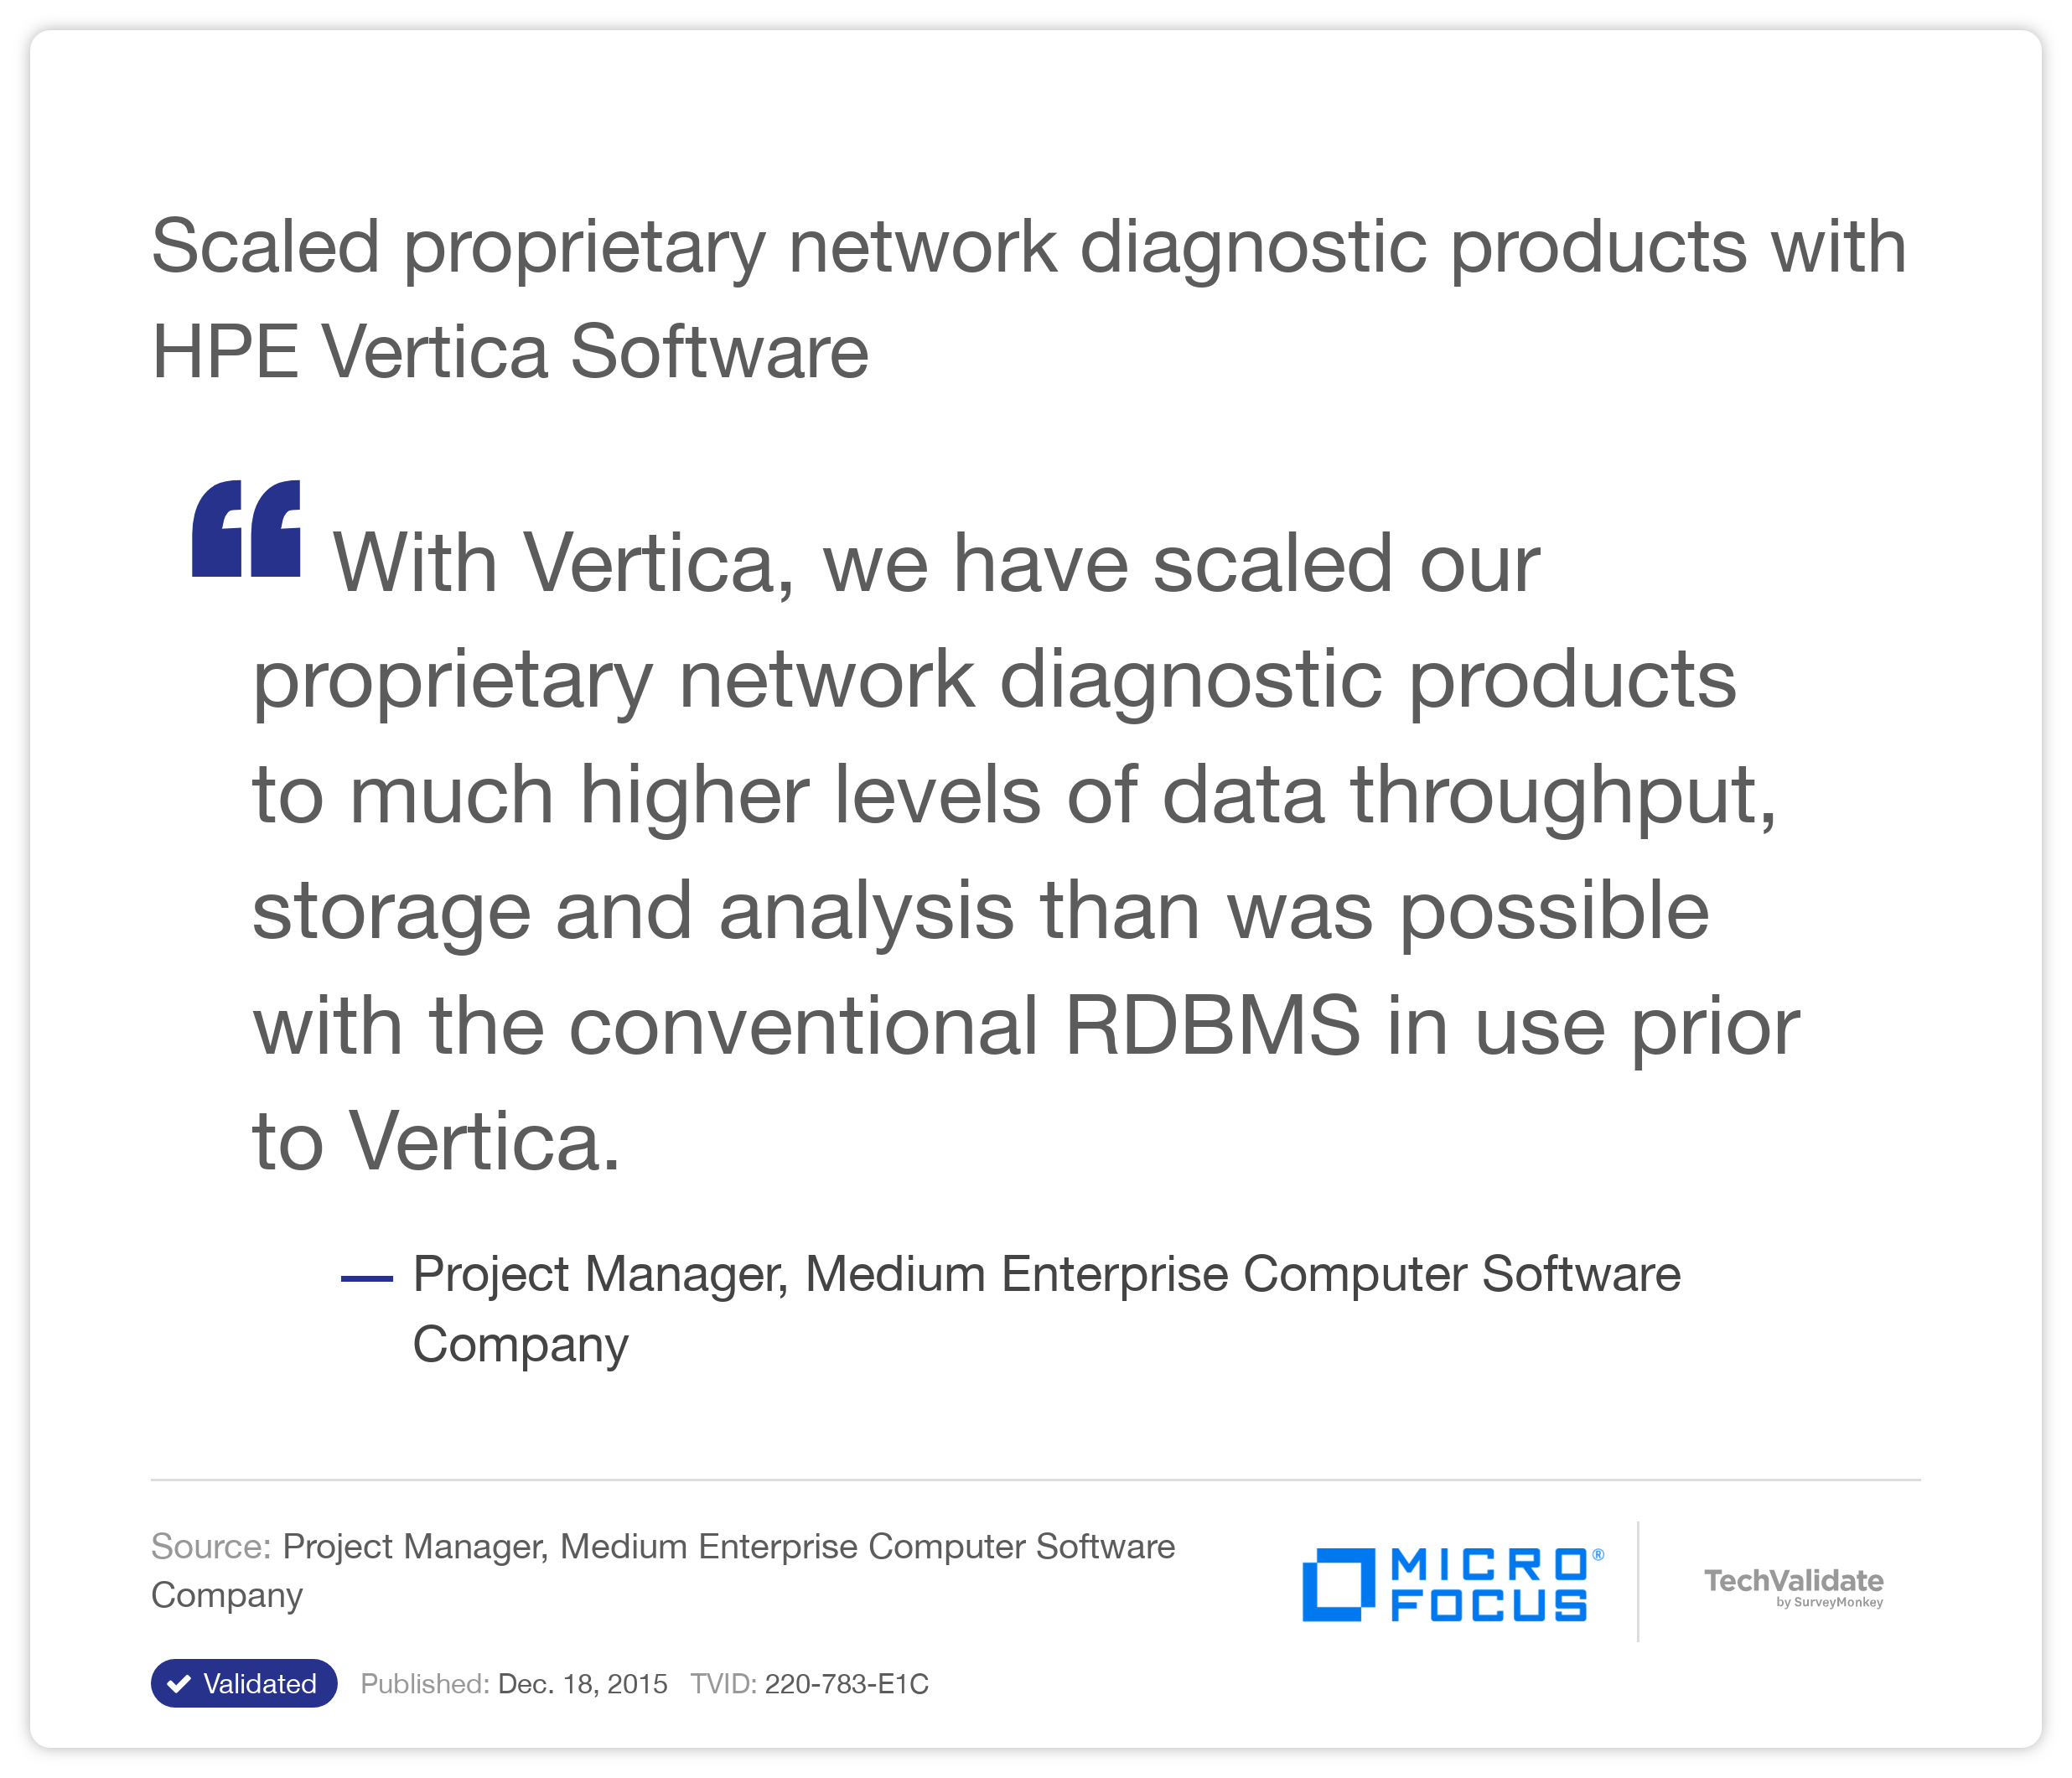 Scaled proprietary network diagnostic products with HP Vertica Software